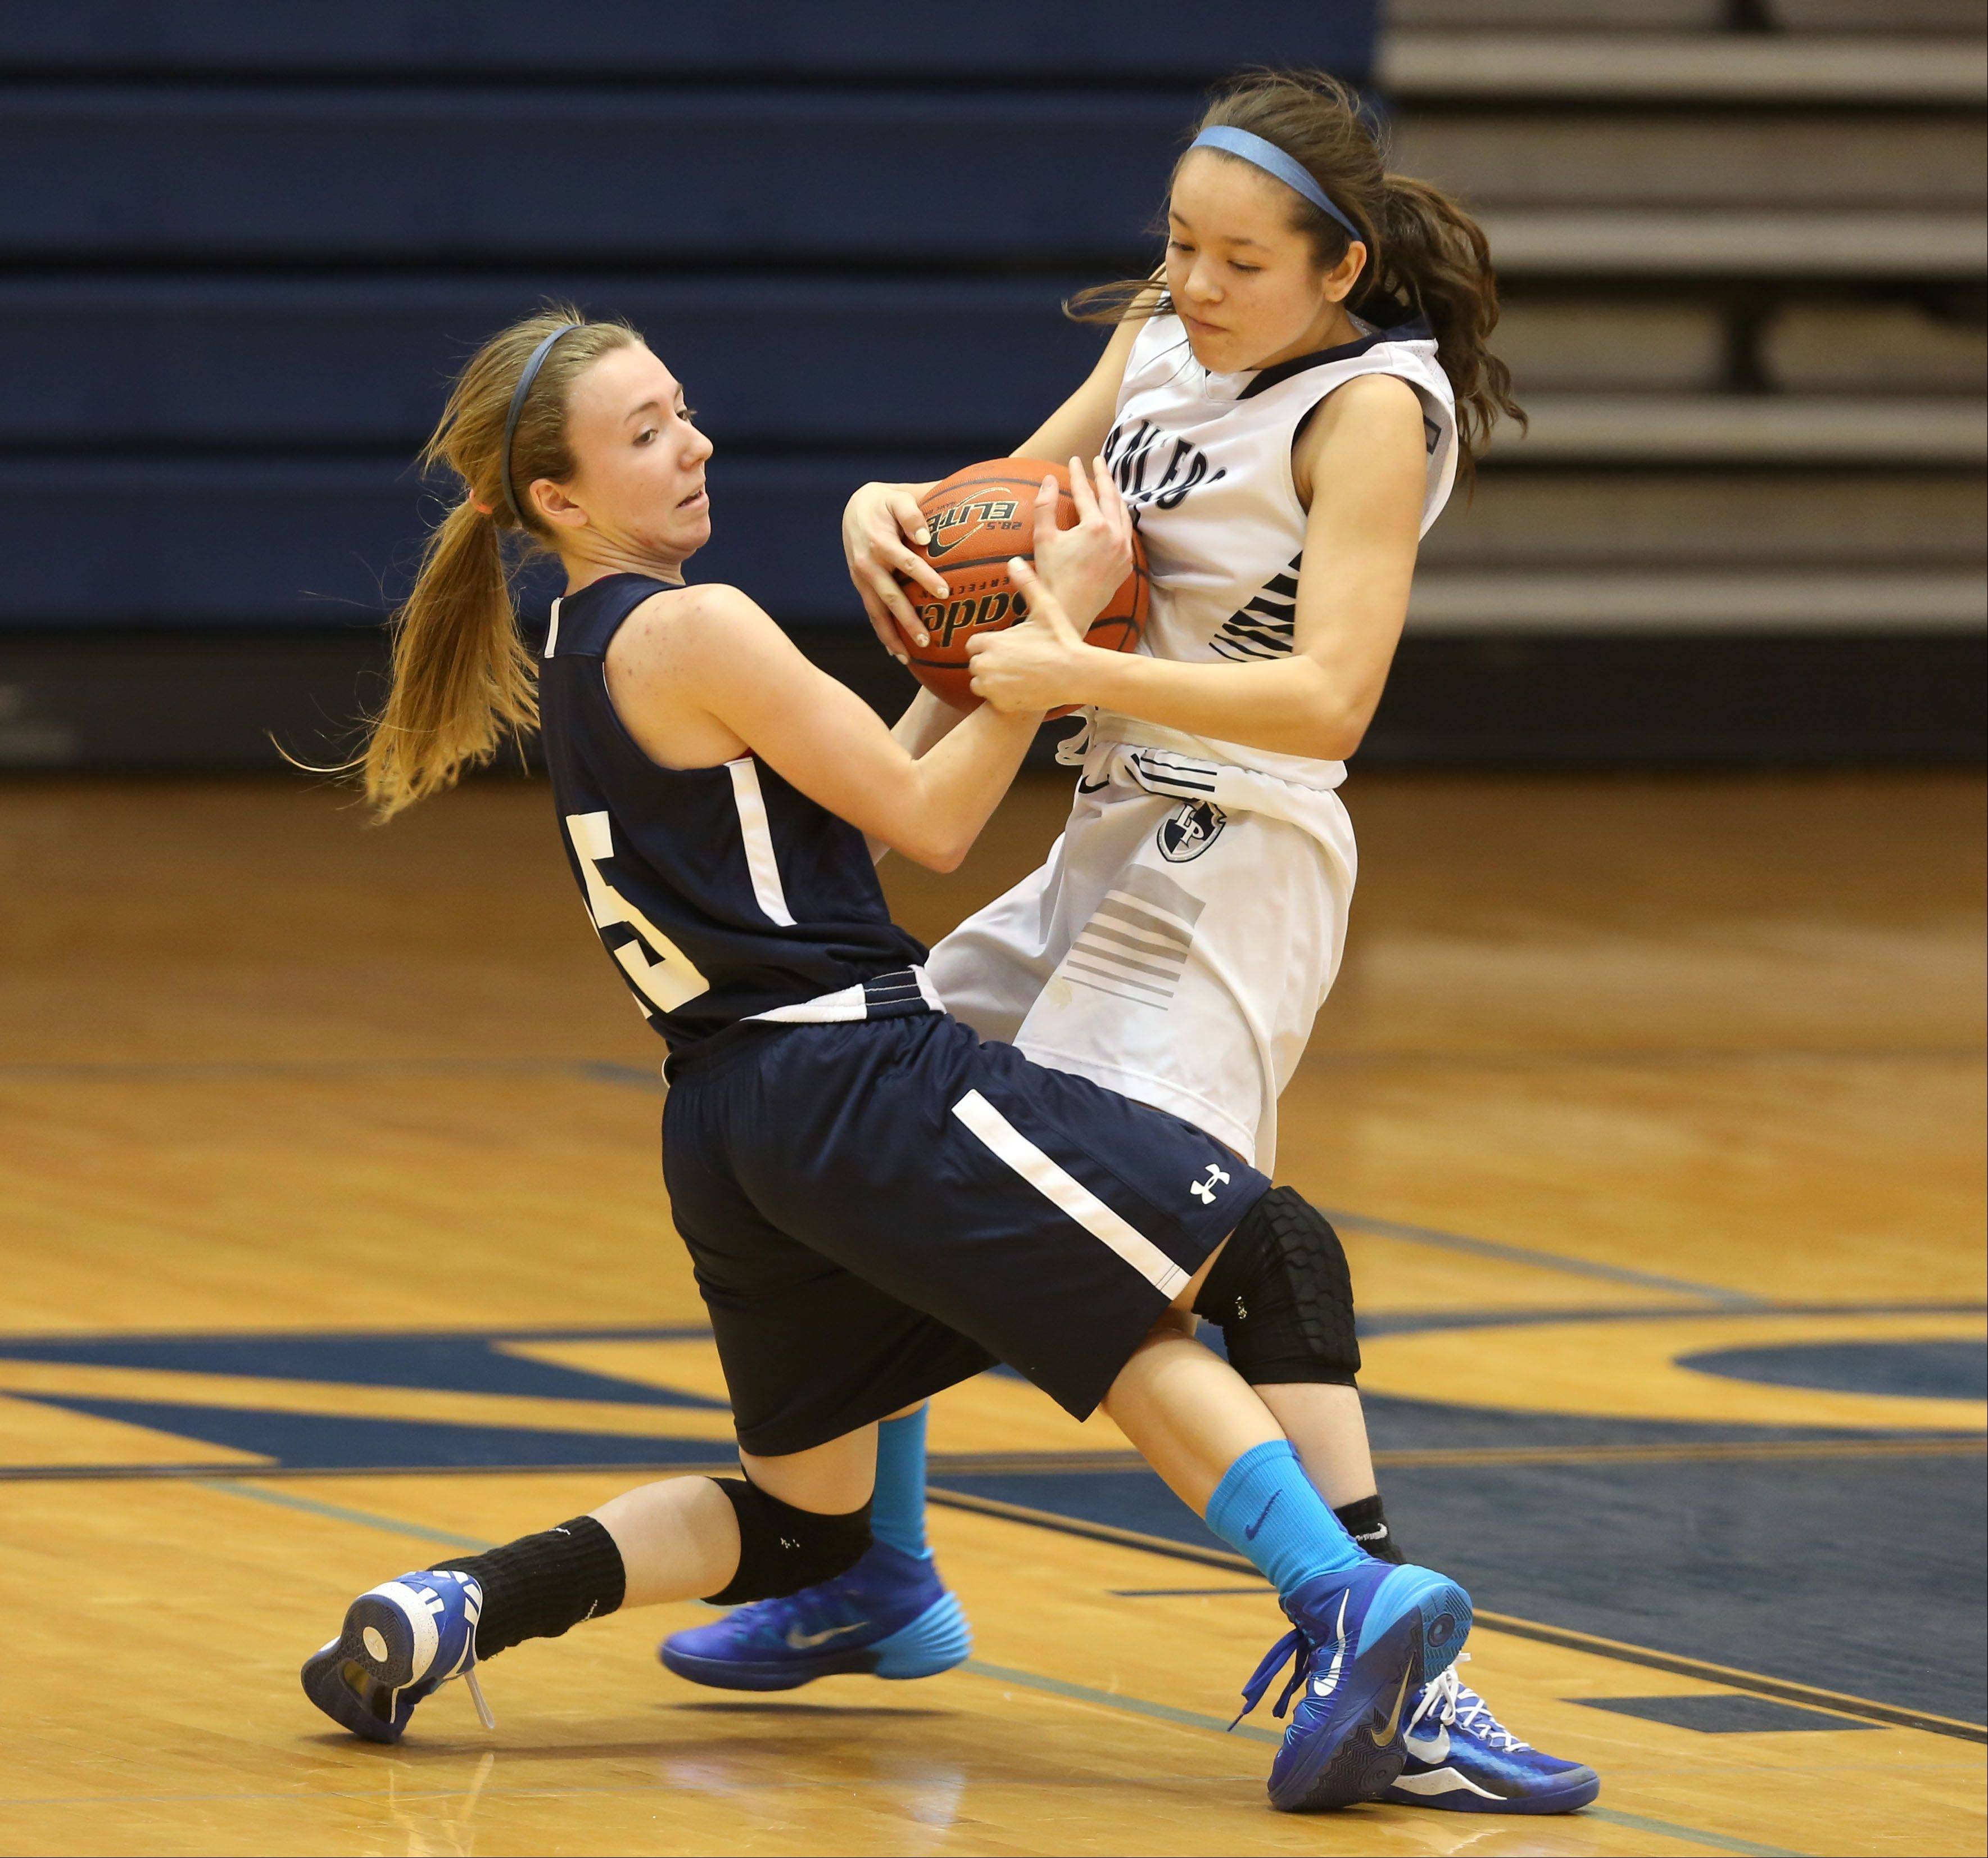 Addison Trail's Connie Barkoulies, left, battles Lake Park's Kelly Adams, right, during girls basketball action in Roselle.